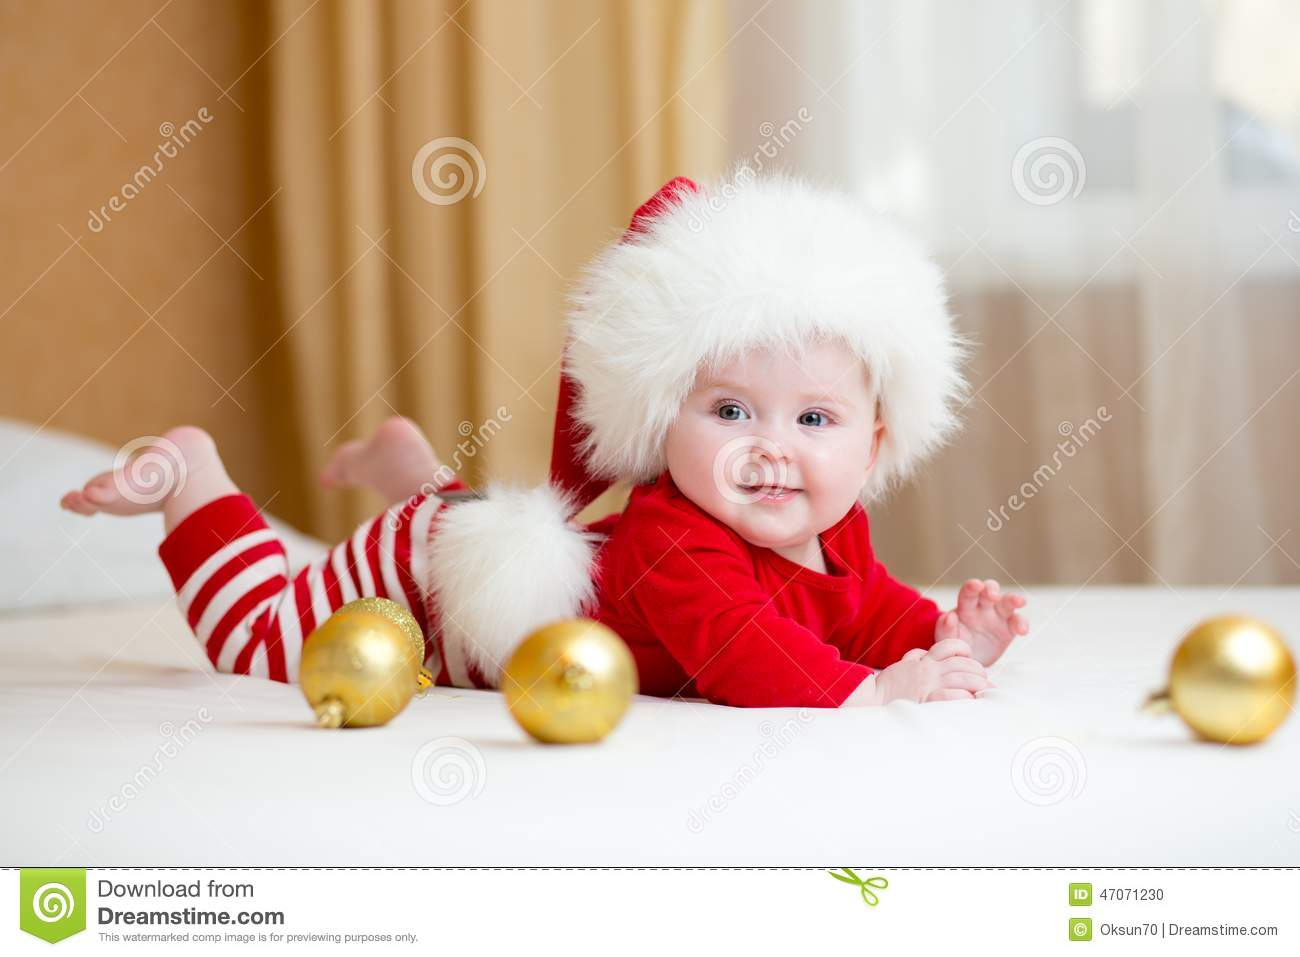 Cute Baby Girl Weared Christmas Clothes Stock Photo - Image: 47071230